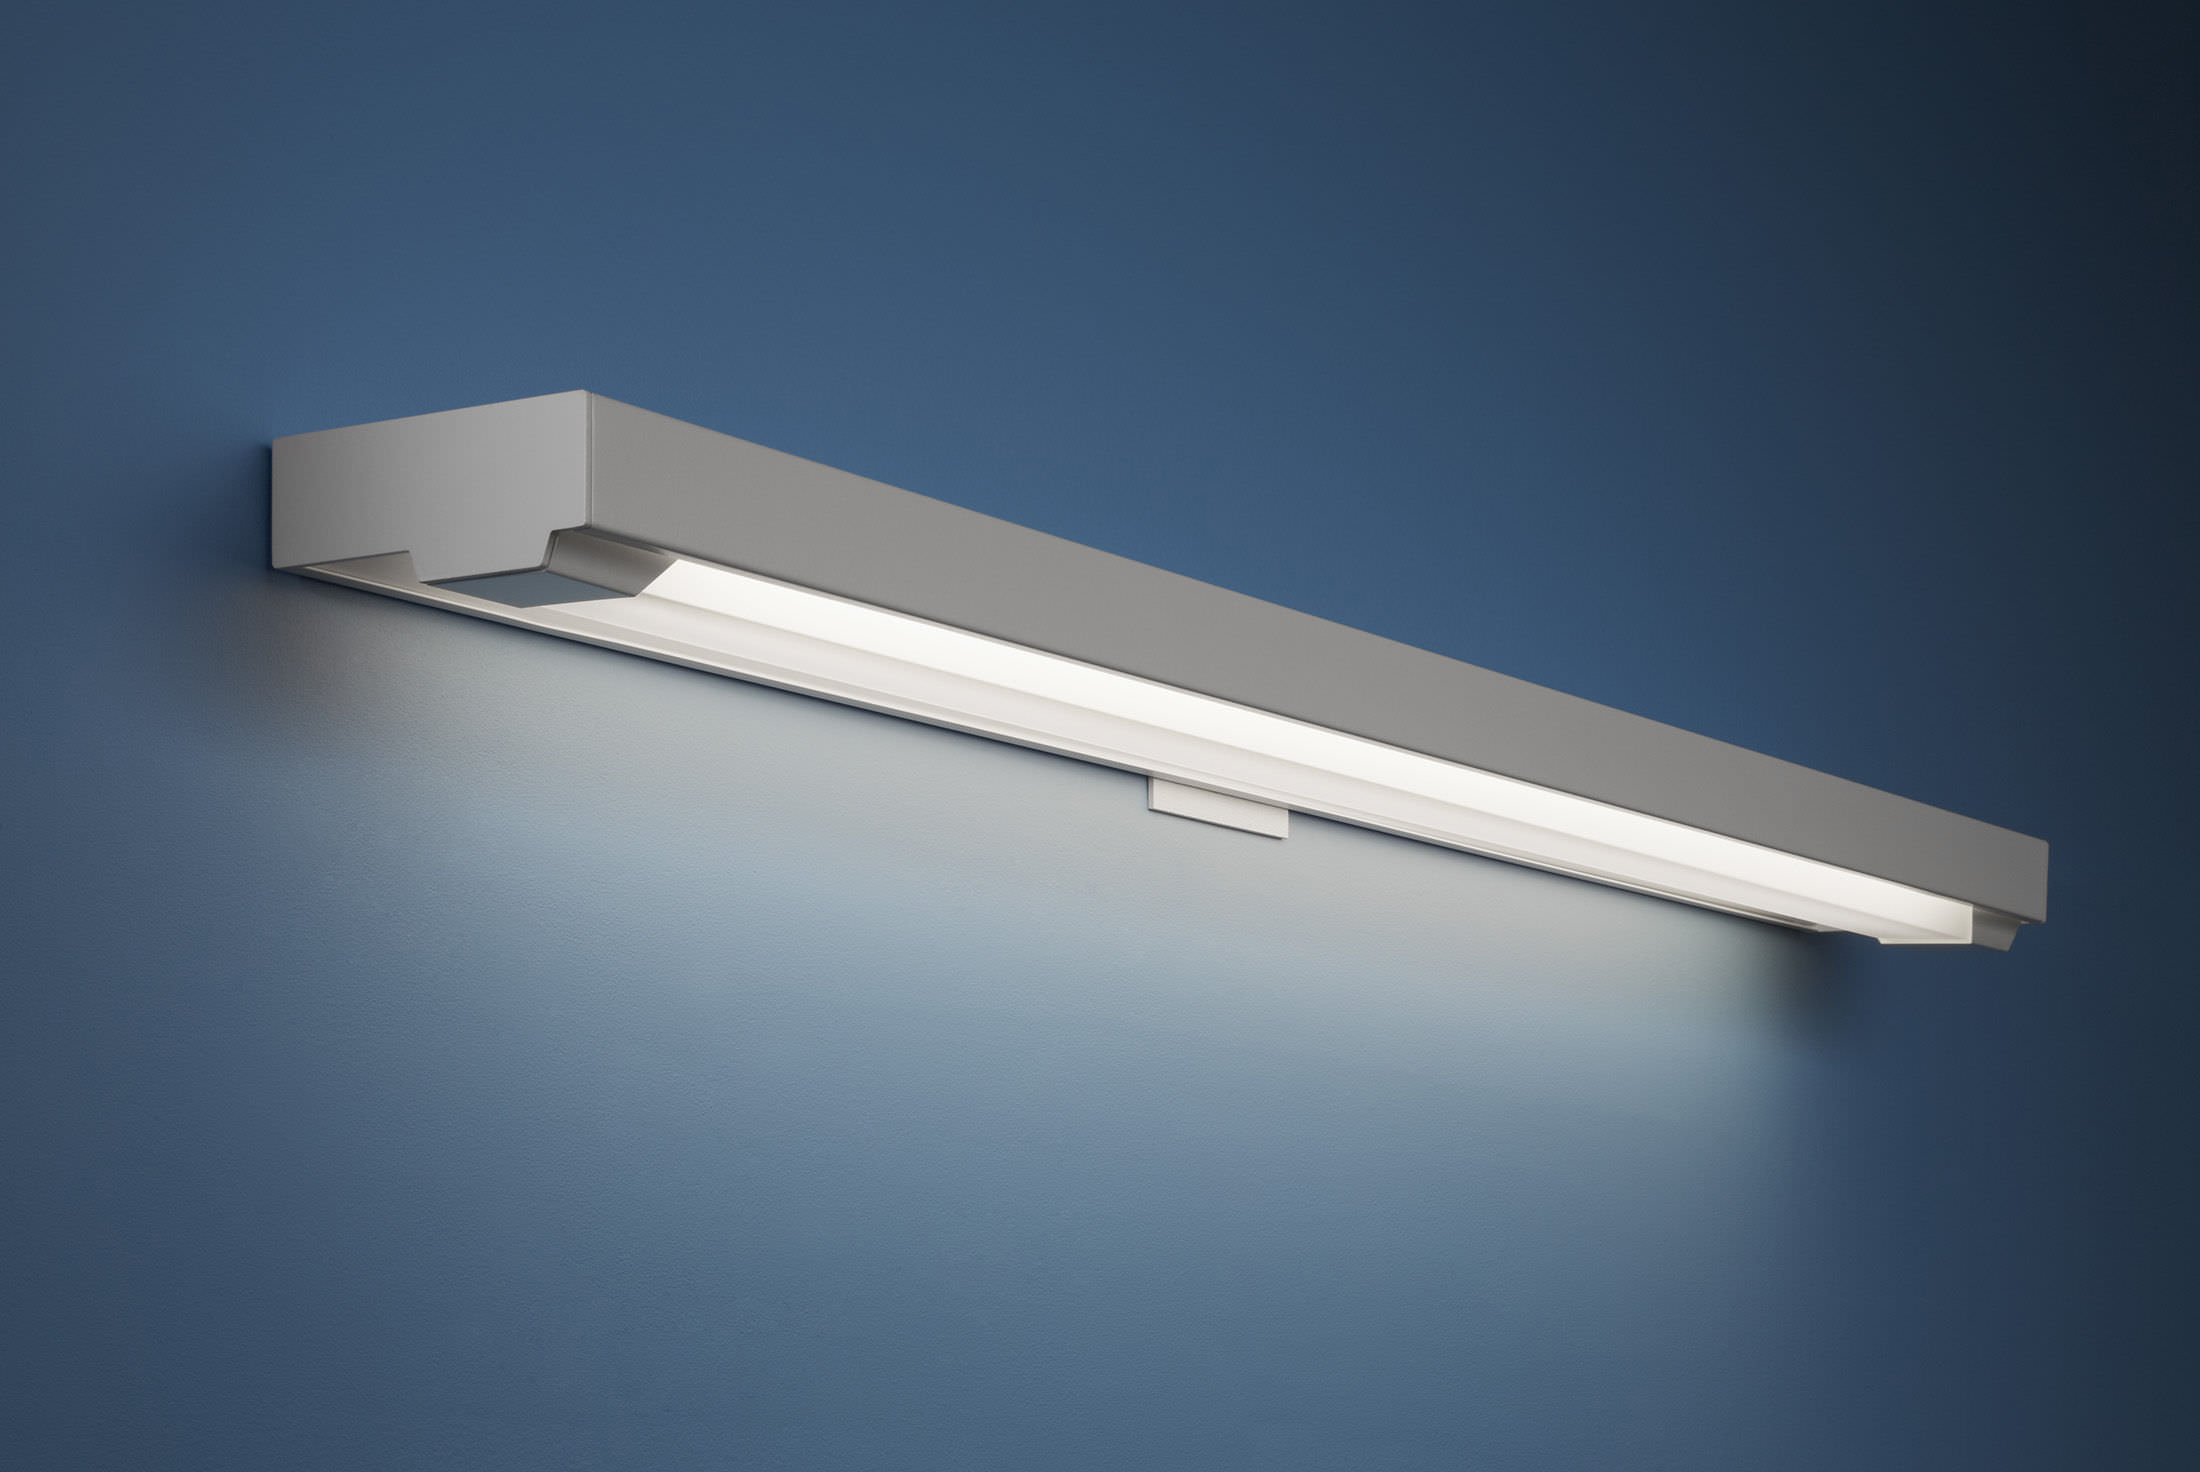 Surface Mounted Light Fixture Aerial Litecontrol Recessed